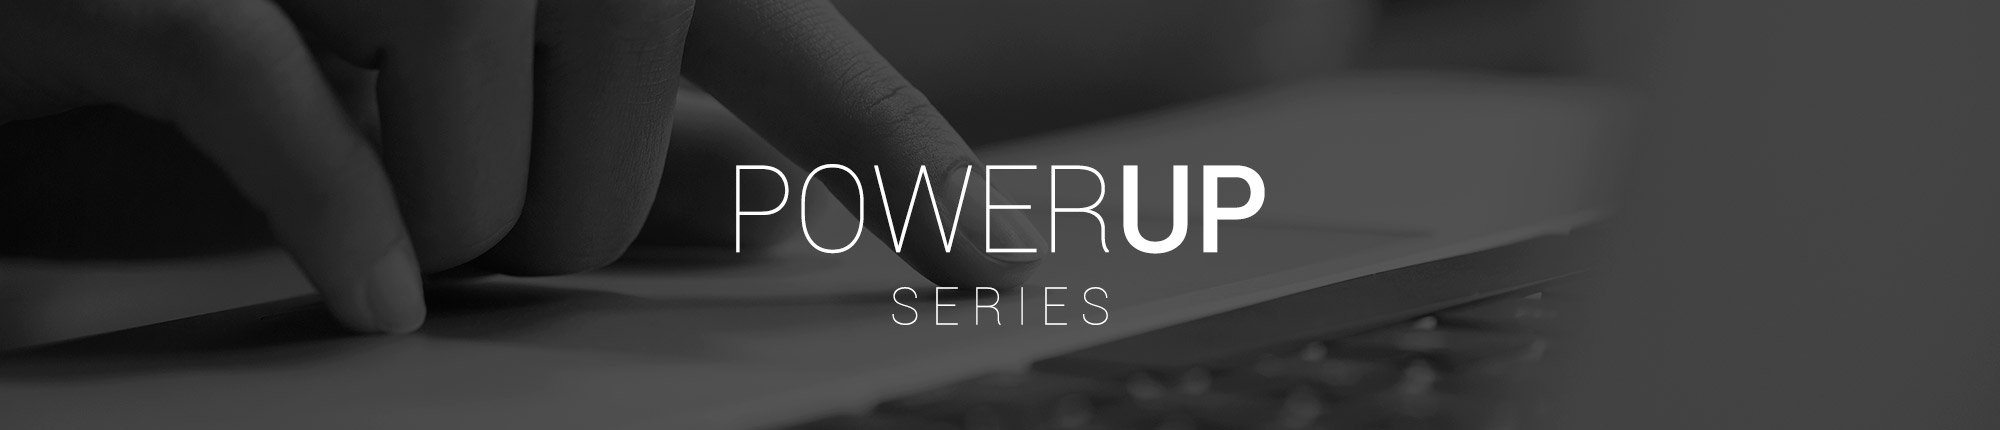 https://larryjordan.com/wp-content/uploads/2014/05/power-up-series_webinar-weekly-final-cut-pro-free.jpg